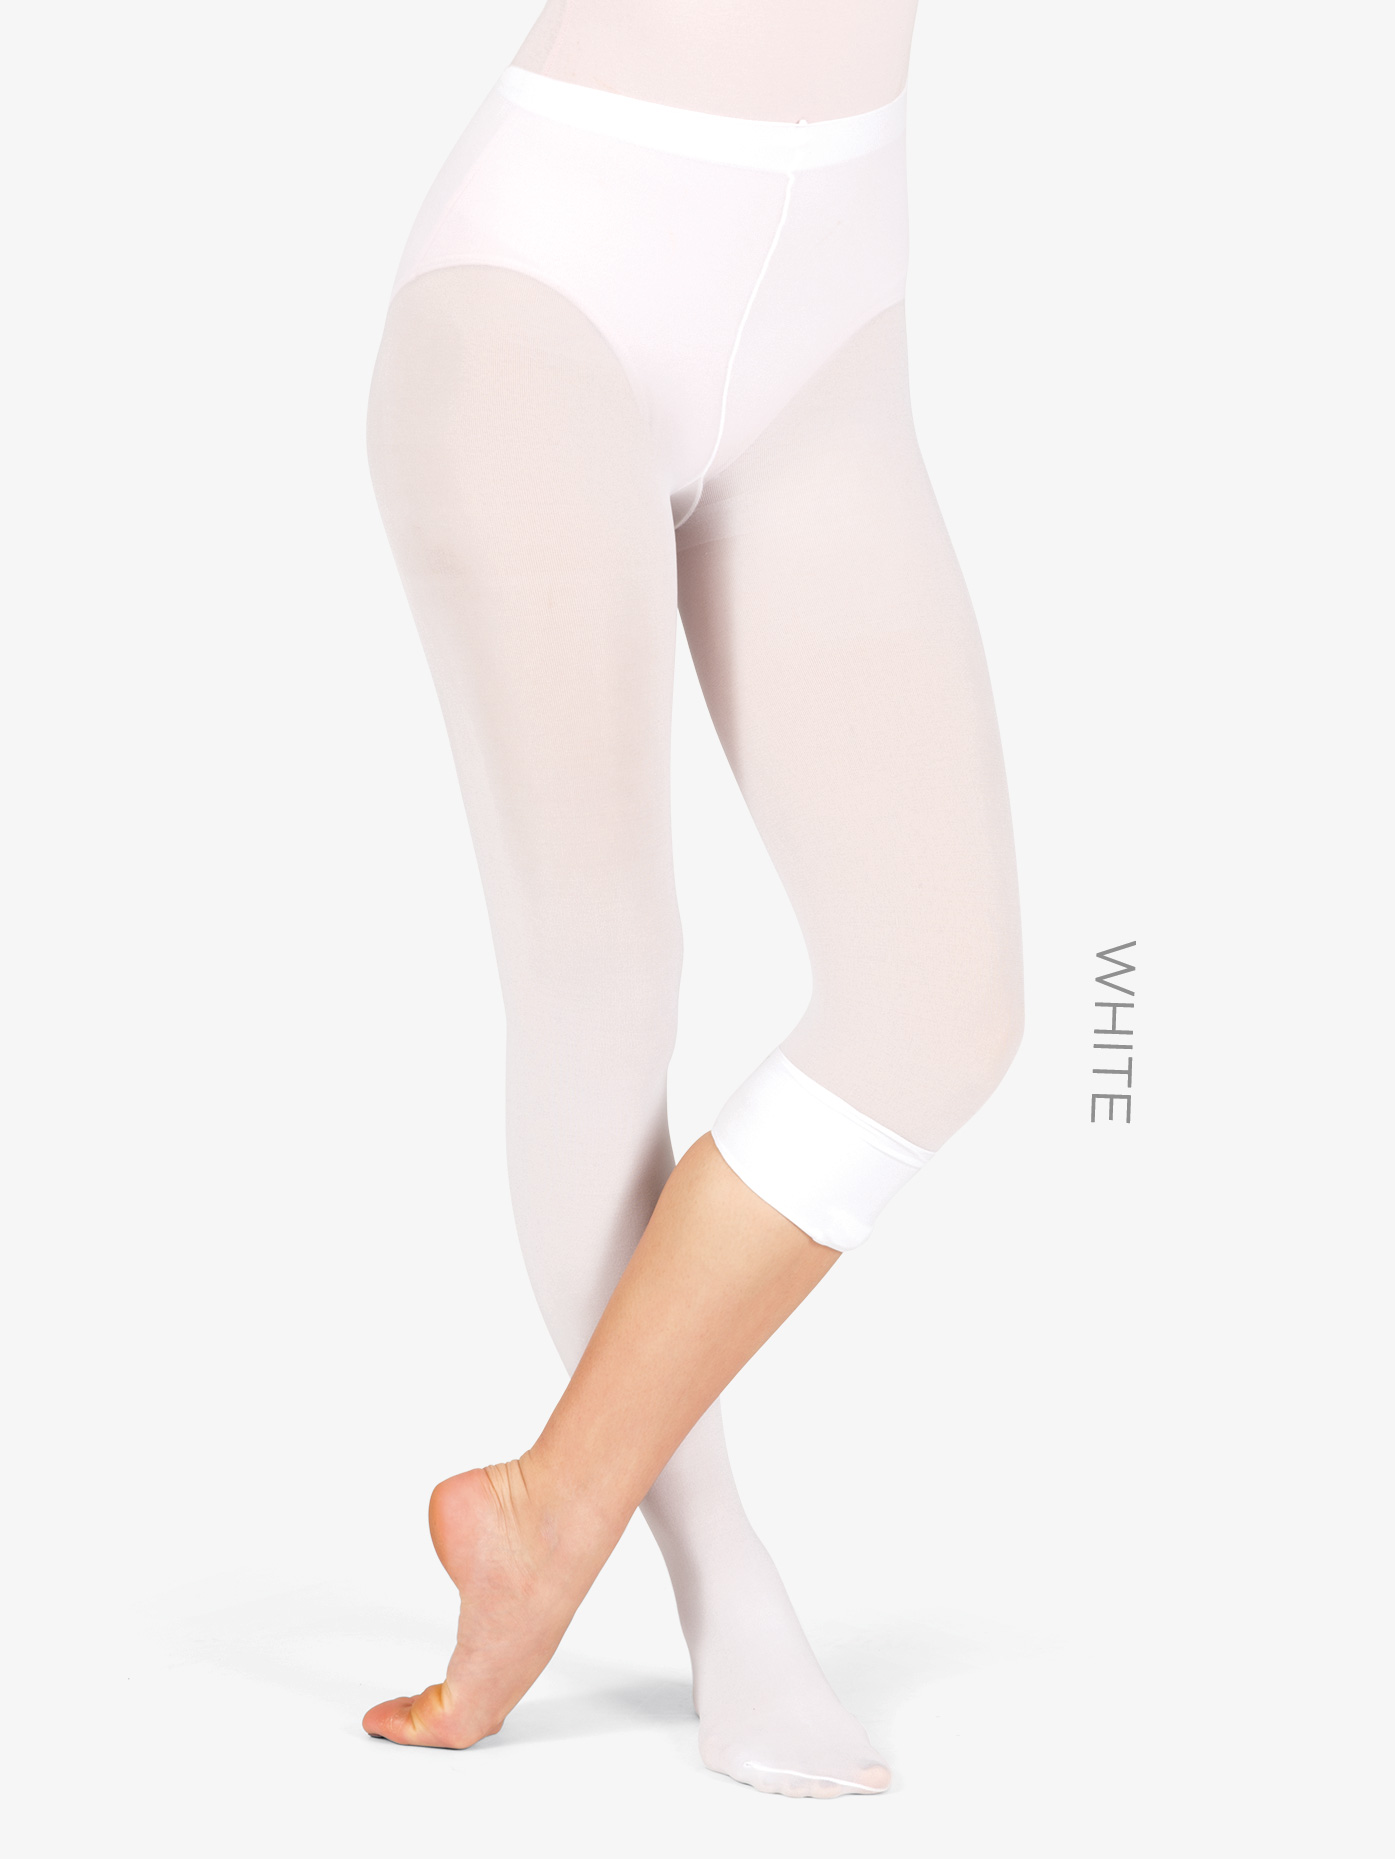 29bf94a01d8aa Convertible Tights with Smooth Self-Knit Waistband - Convertible Tights |  Theatricals T5515 | DiscountDance.com